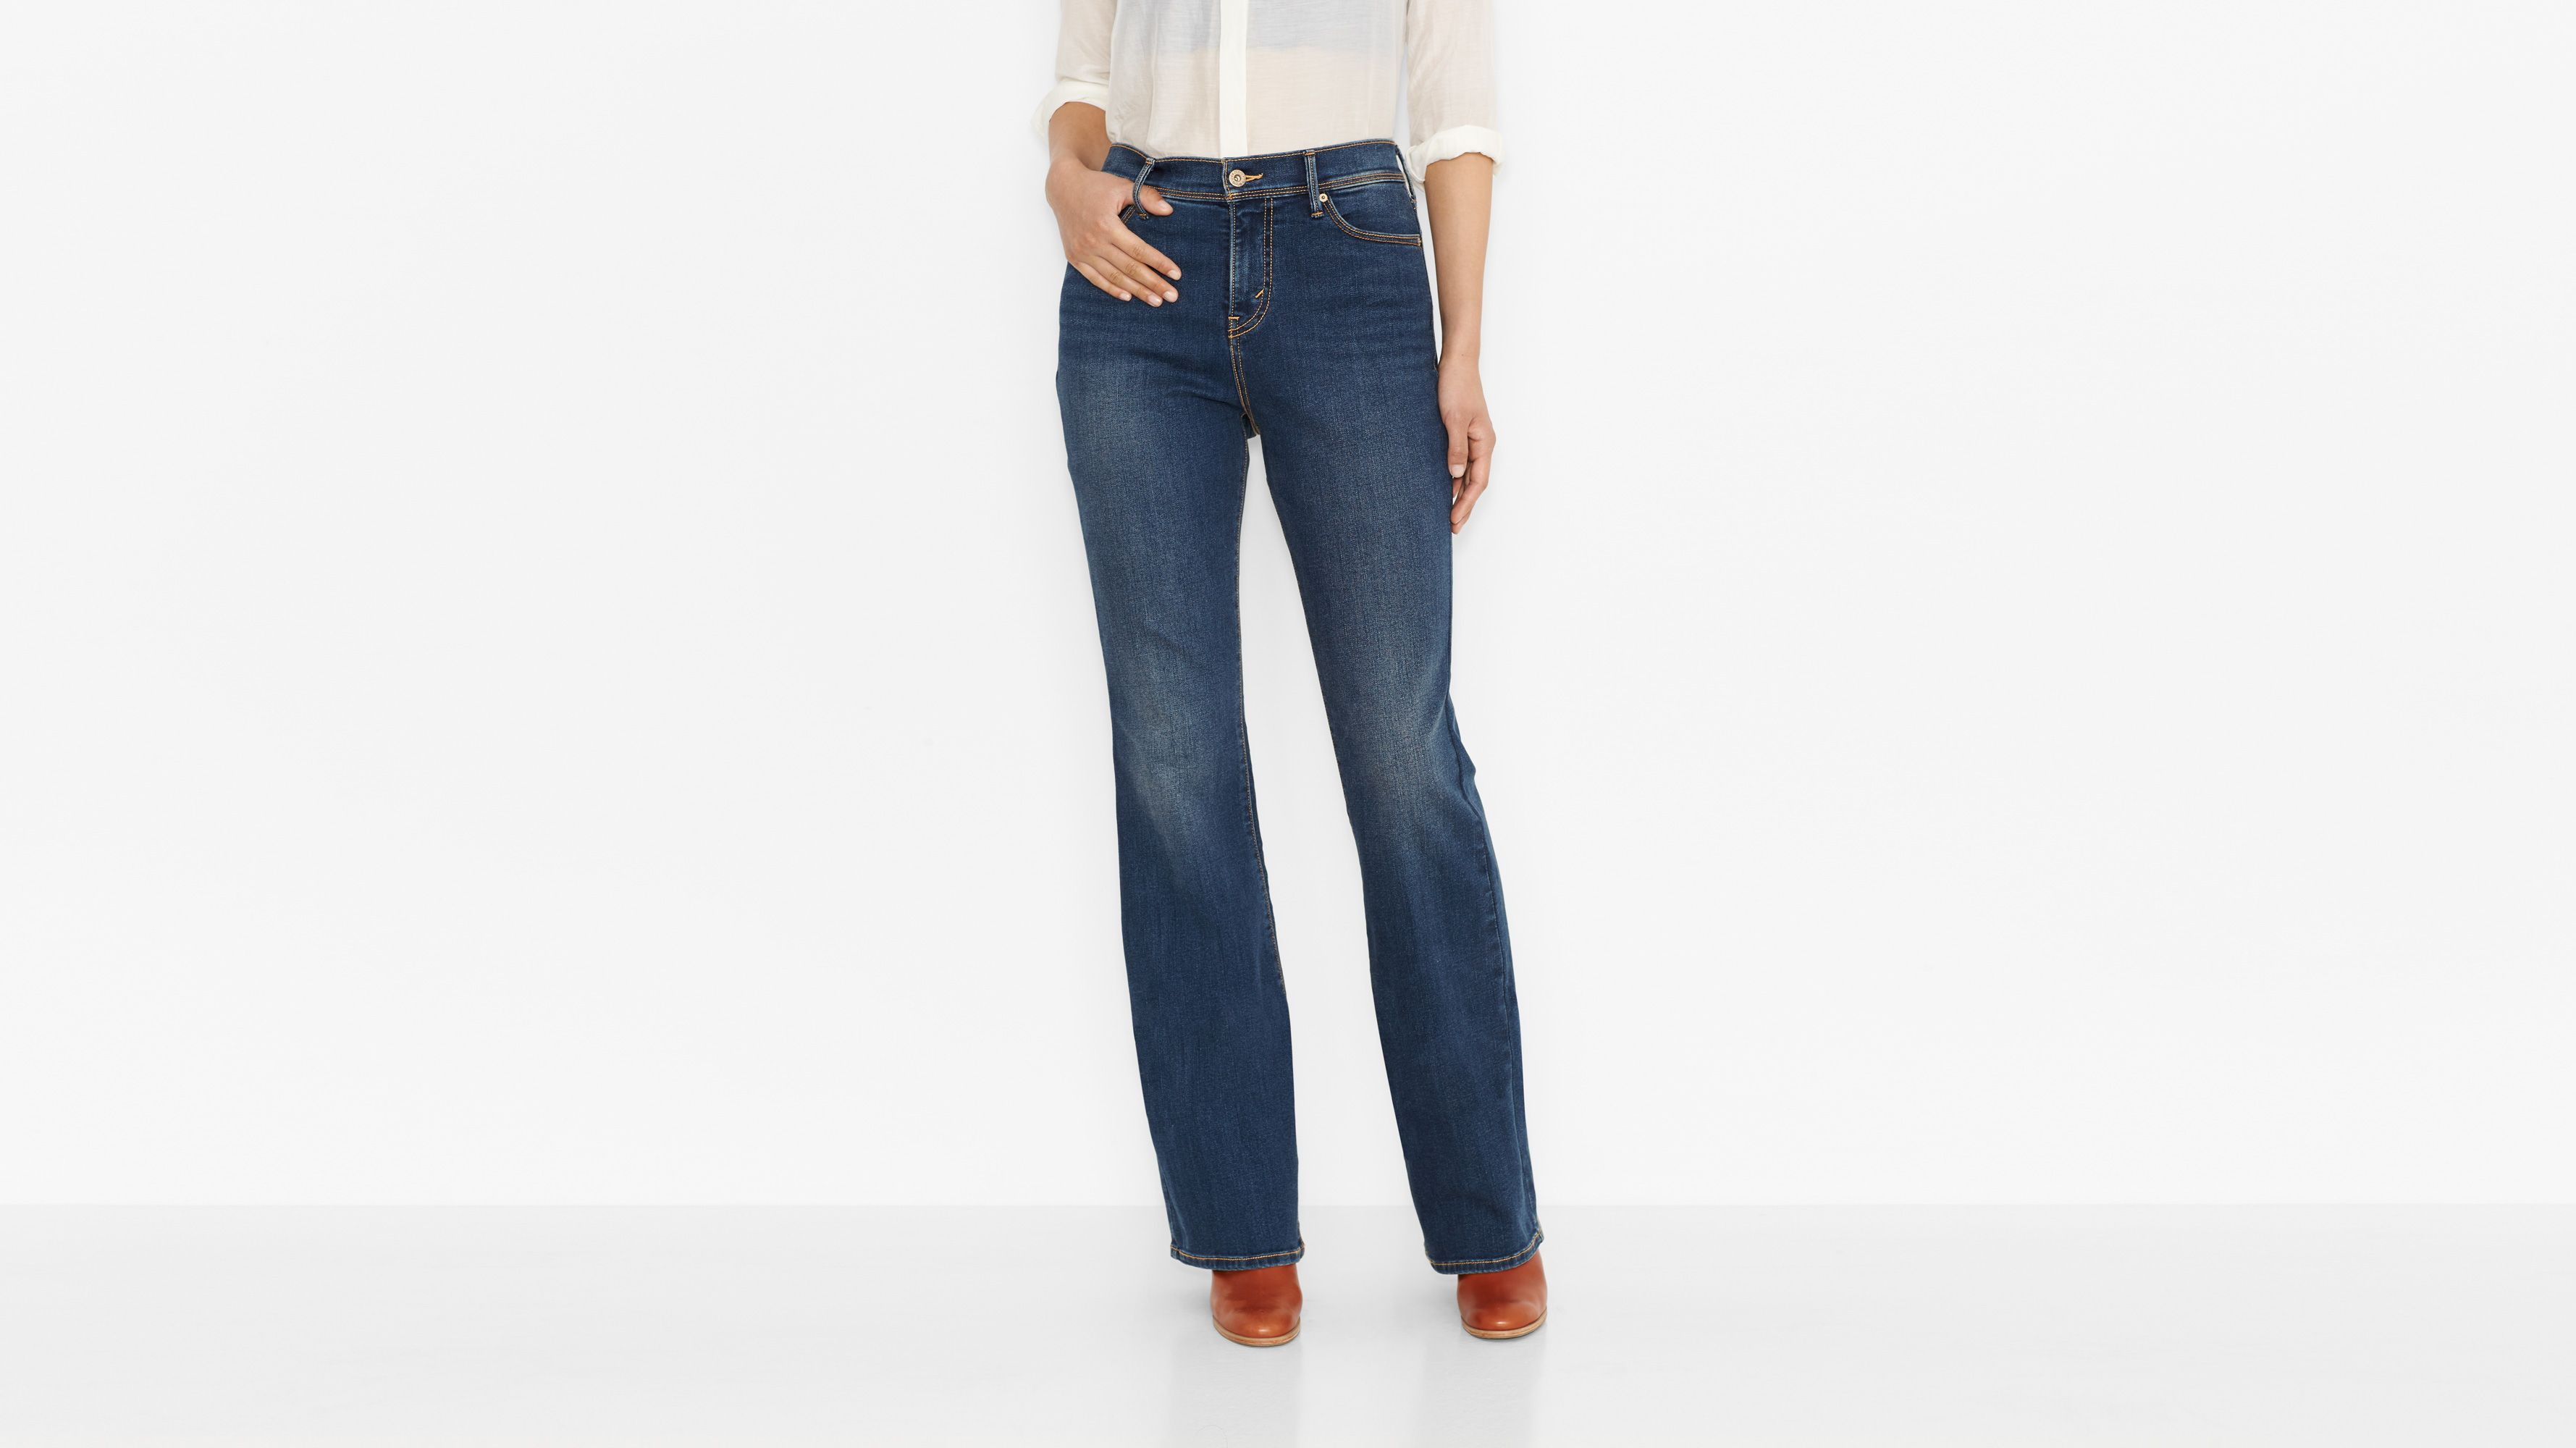 512™ Perfectly Slimming Boot Cut Jeans - Daylight